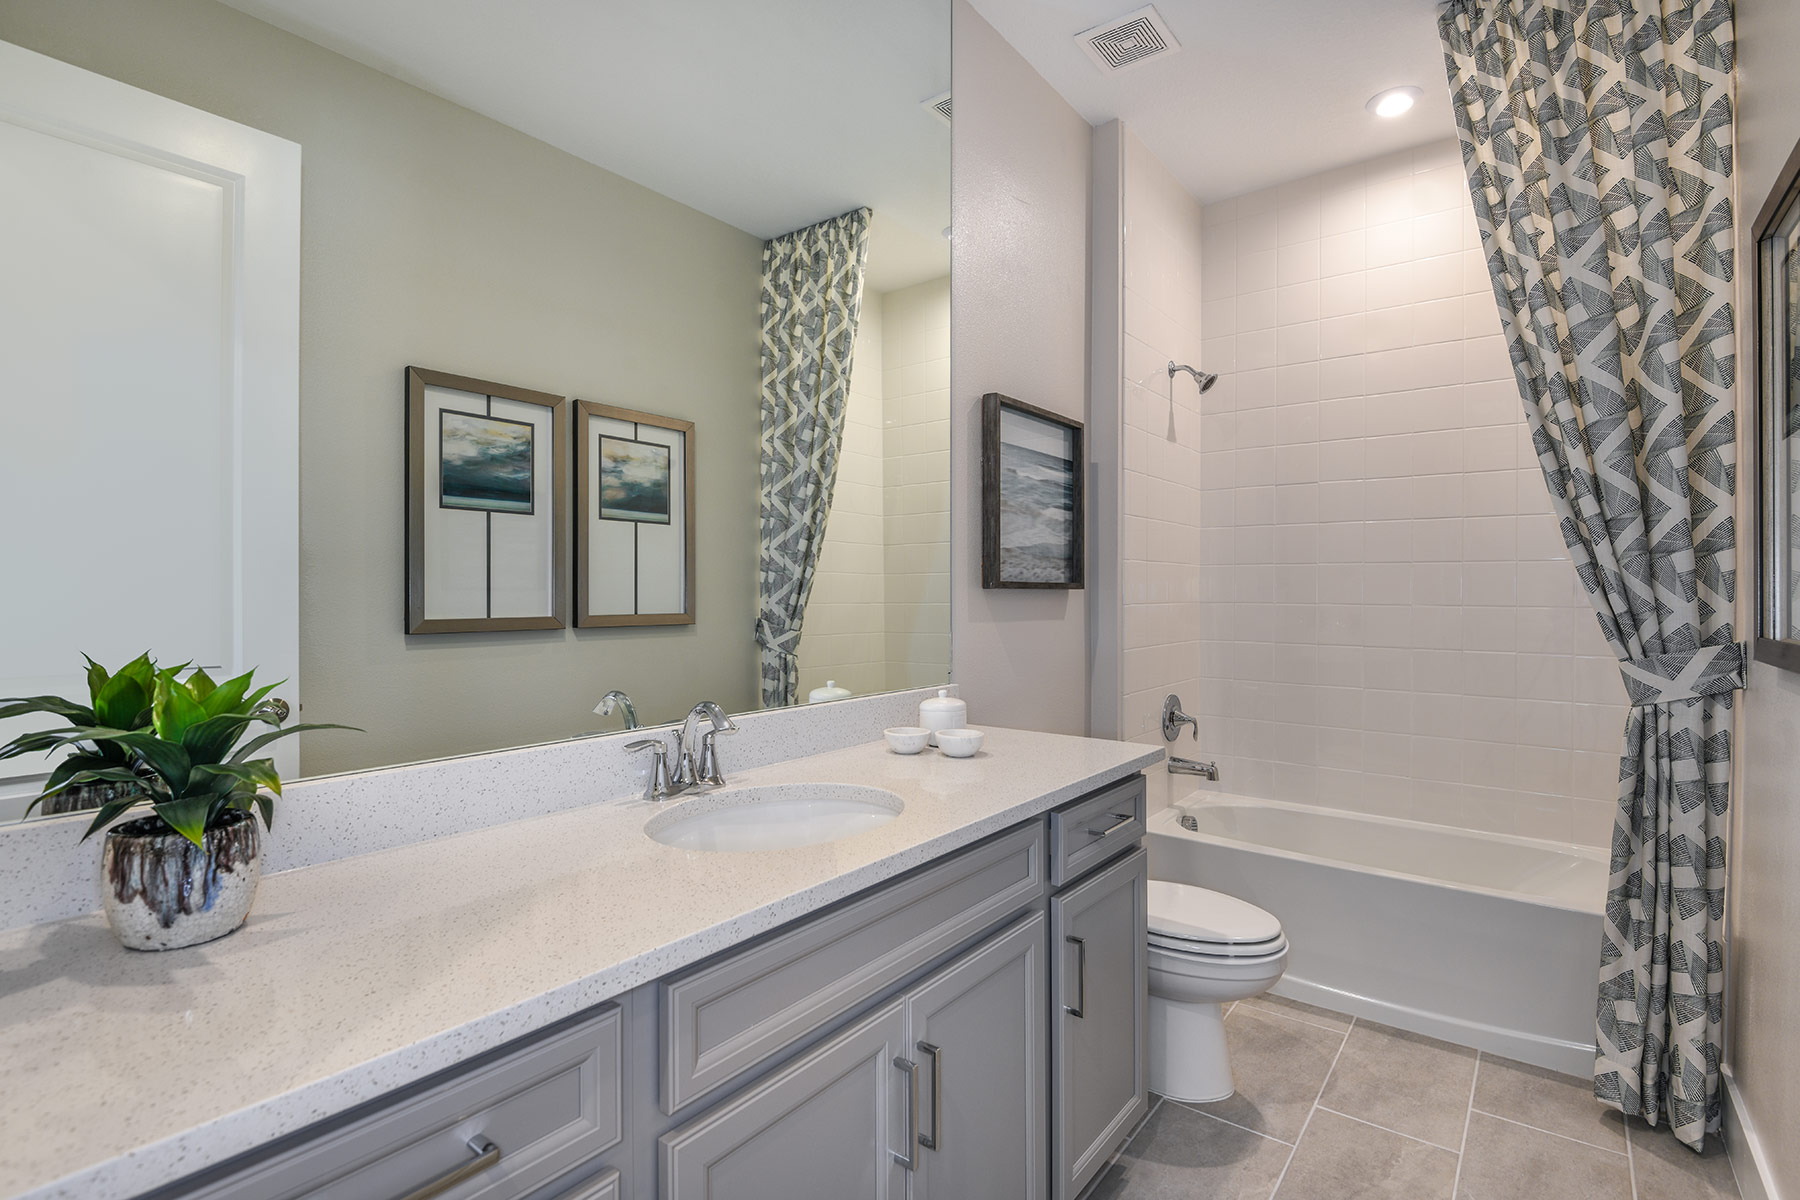 Dominica II Plan Bath at Wellen Park - Renaissance in Venice Florida by Mattamy Homes